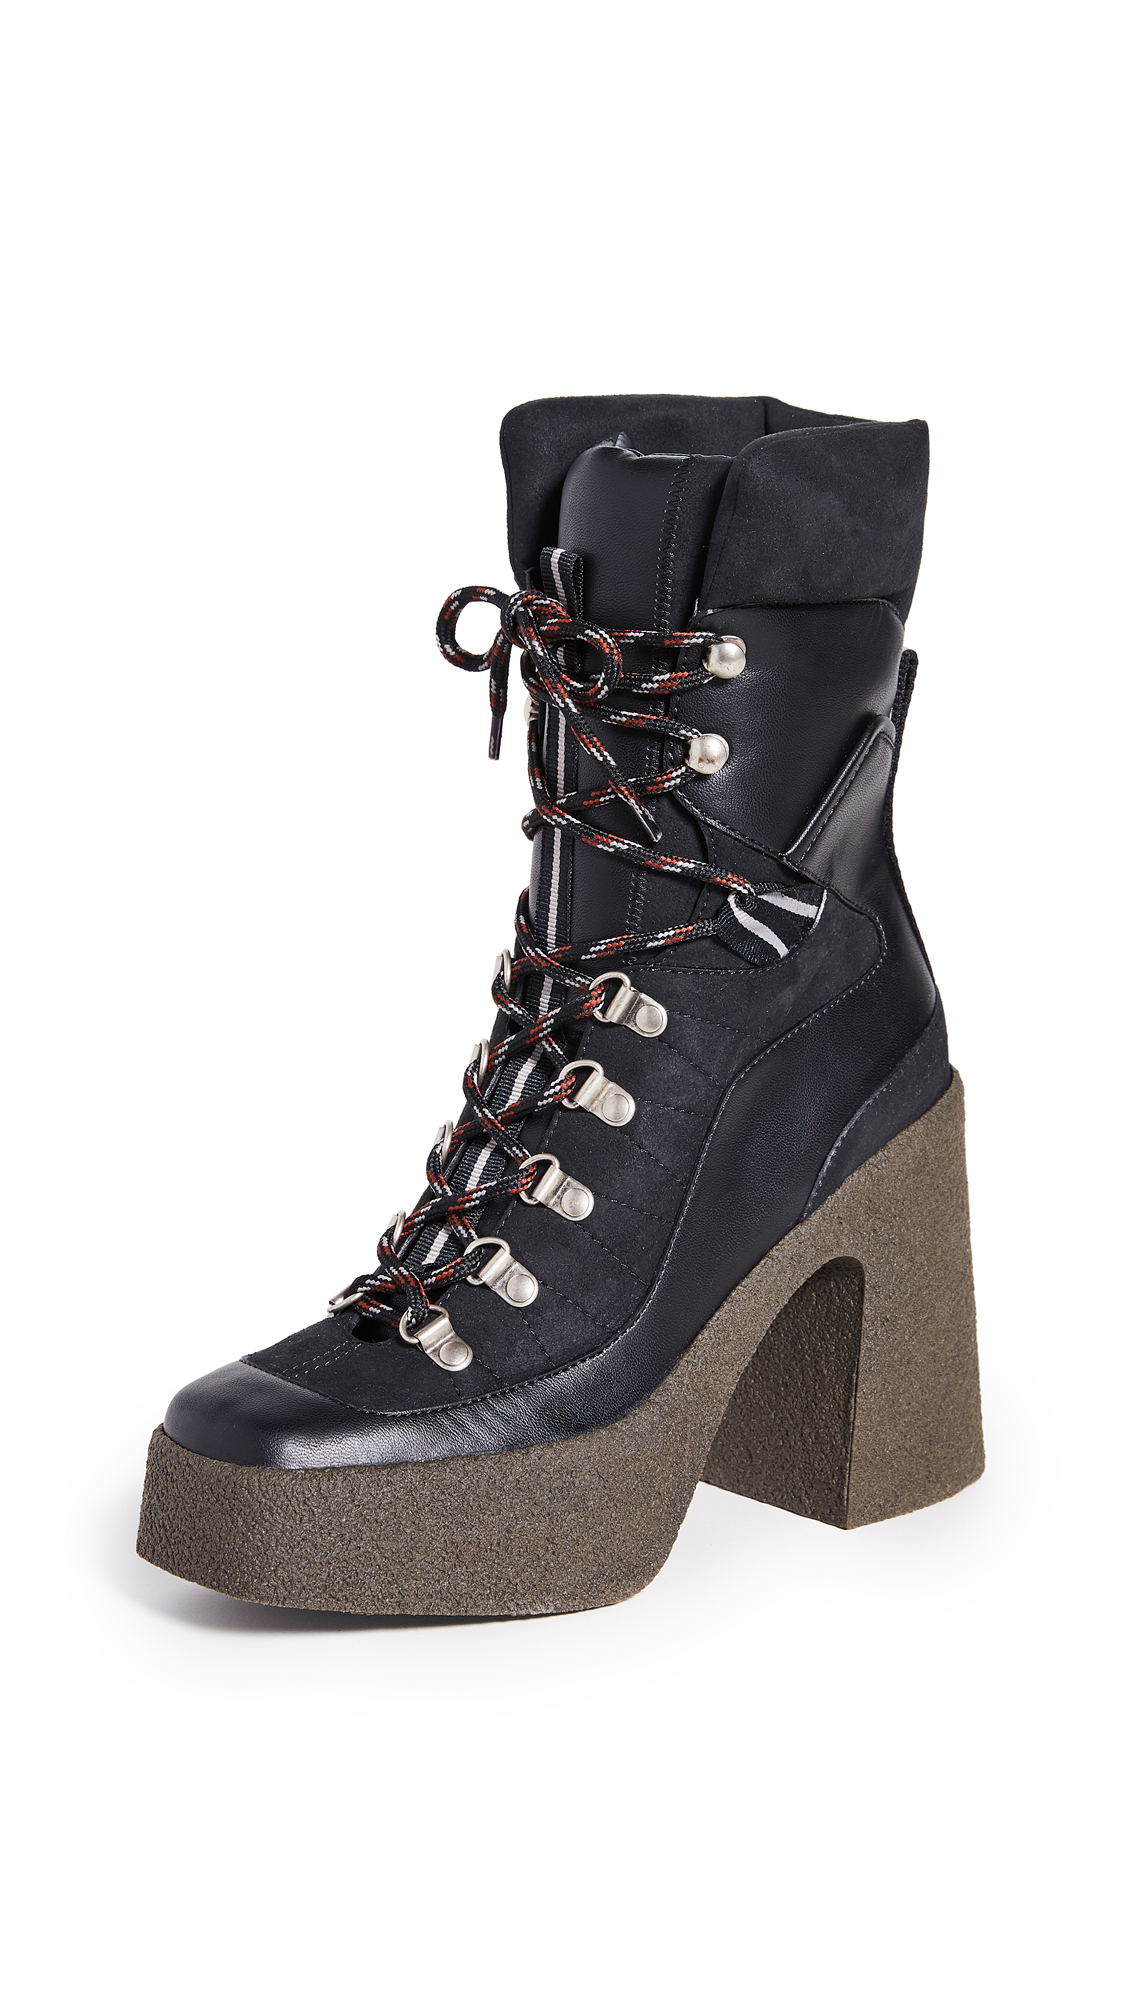 Buy Stella McCartney Lace-Up Boots online, shop Stella McCartney